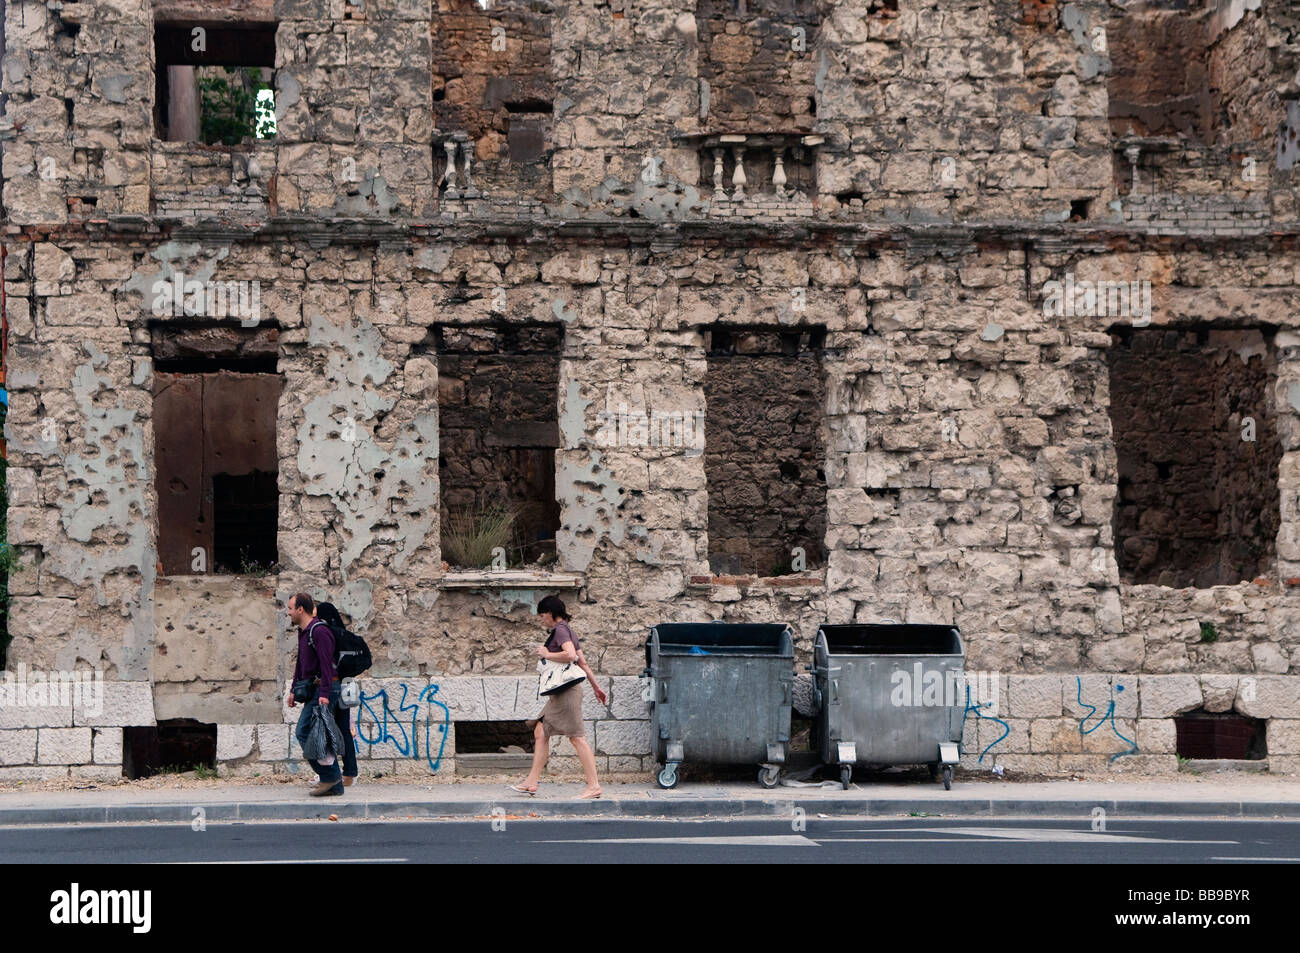 Pedestrians walk past a house showing shrapnel damage from the 1992-95 war in the town of Mostar in Bosnia Herzegovina - Stock Image